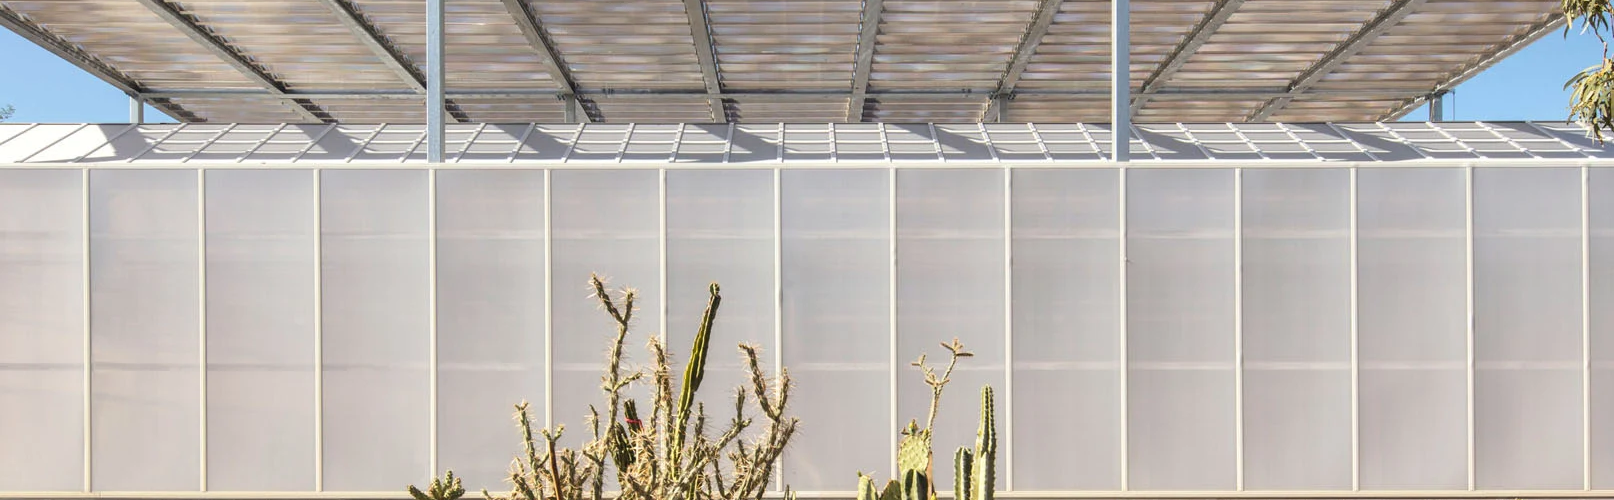 Desert Botanical Garden in Phoenix enclosed with polycarbonate walls